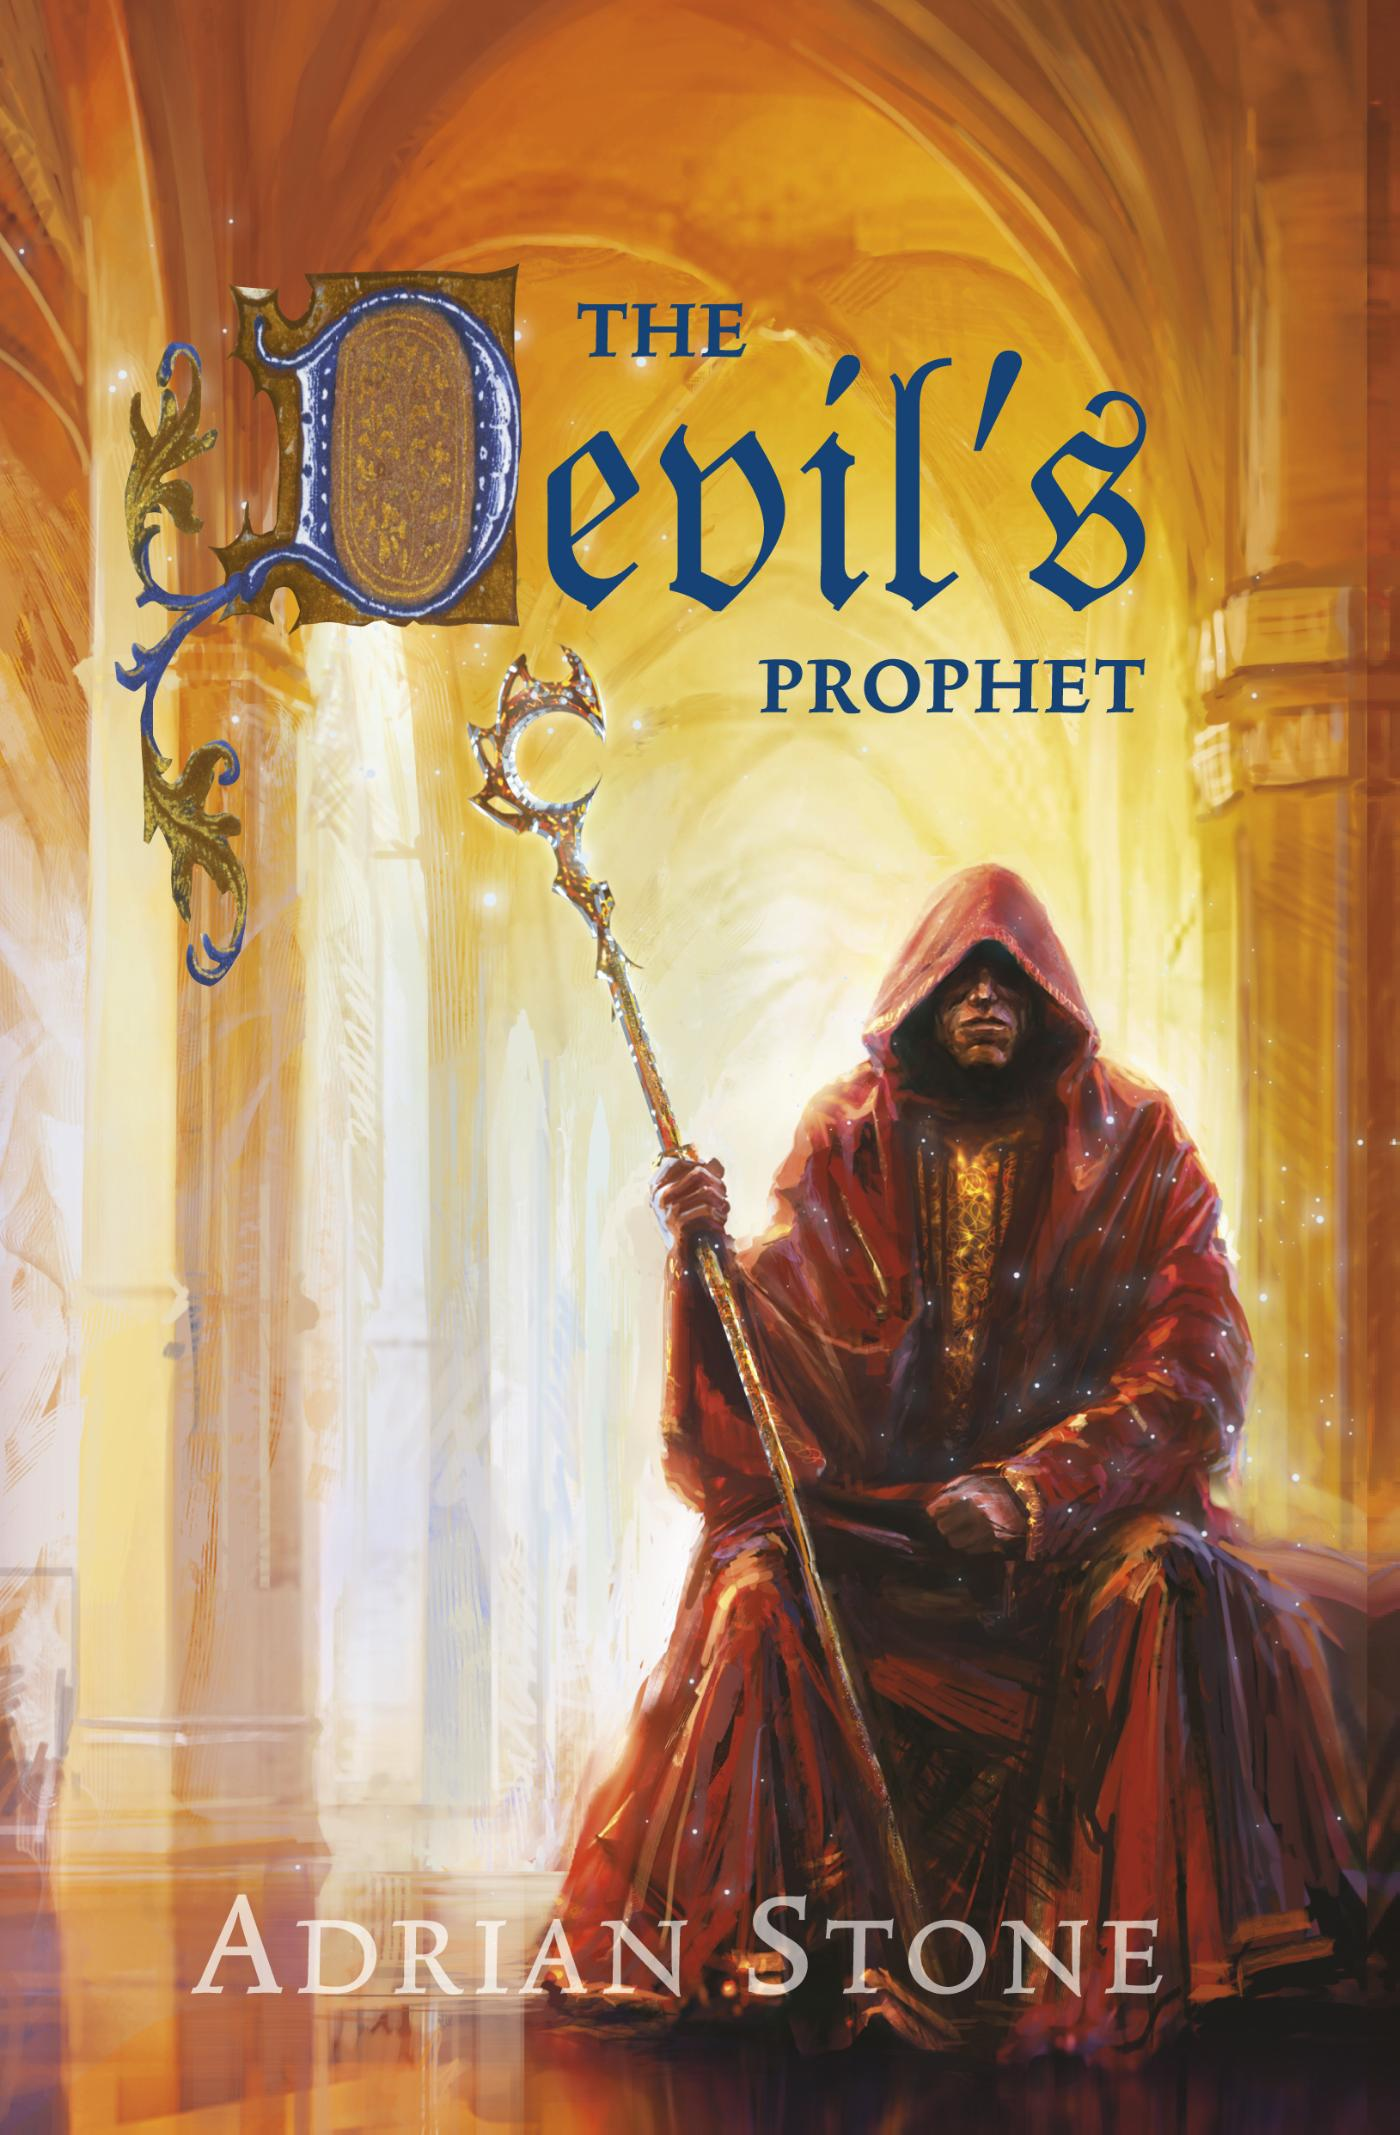 The devil's prophet image